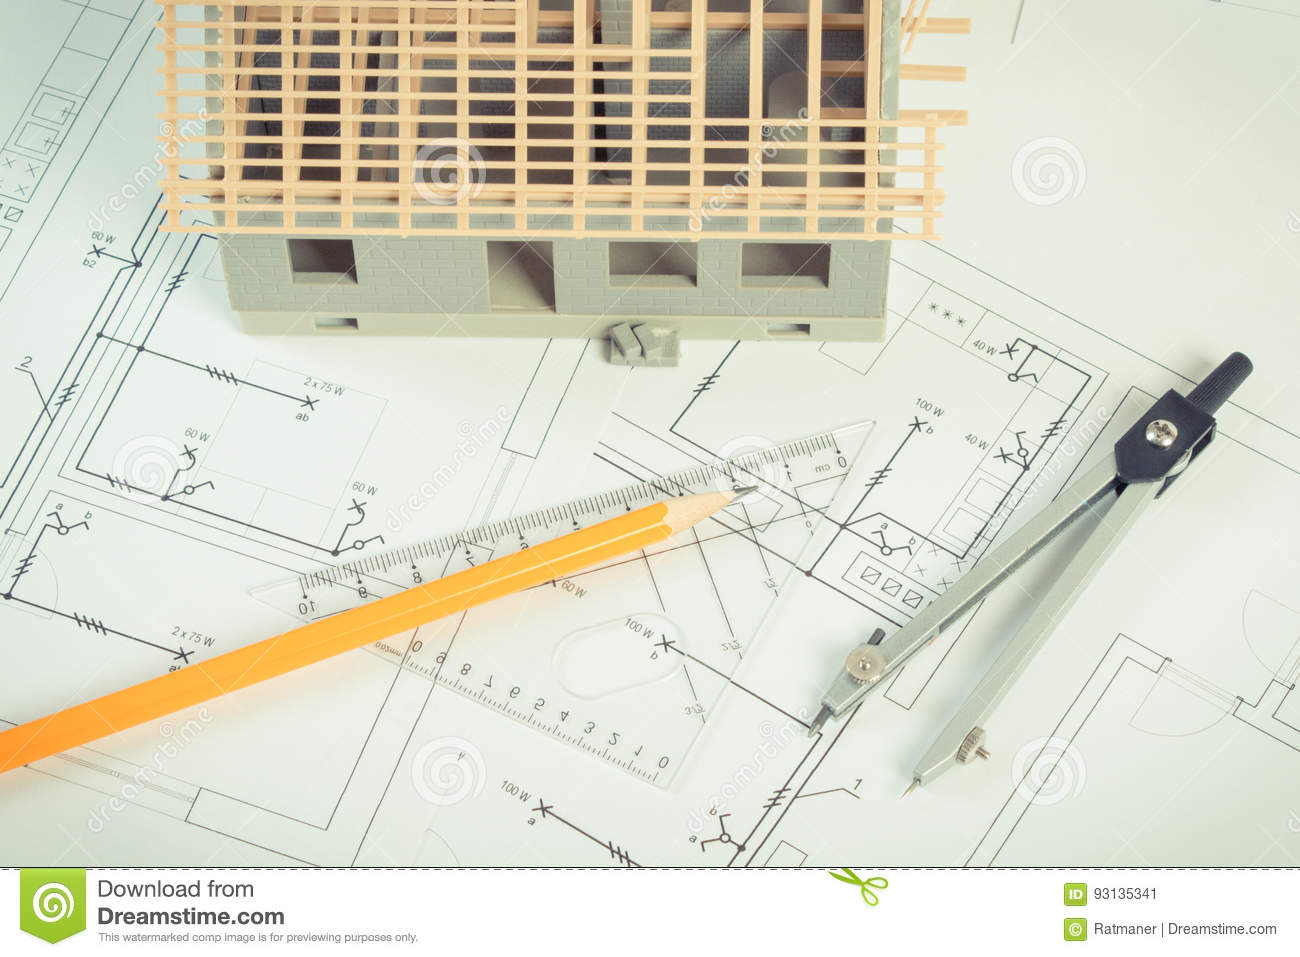 house under construction and accessories for drawing on electrical rh dreamstime com  electrical drawing project